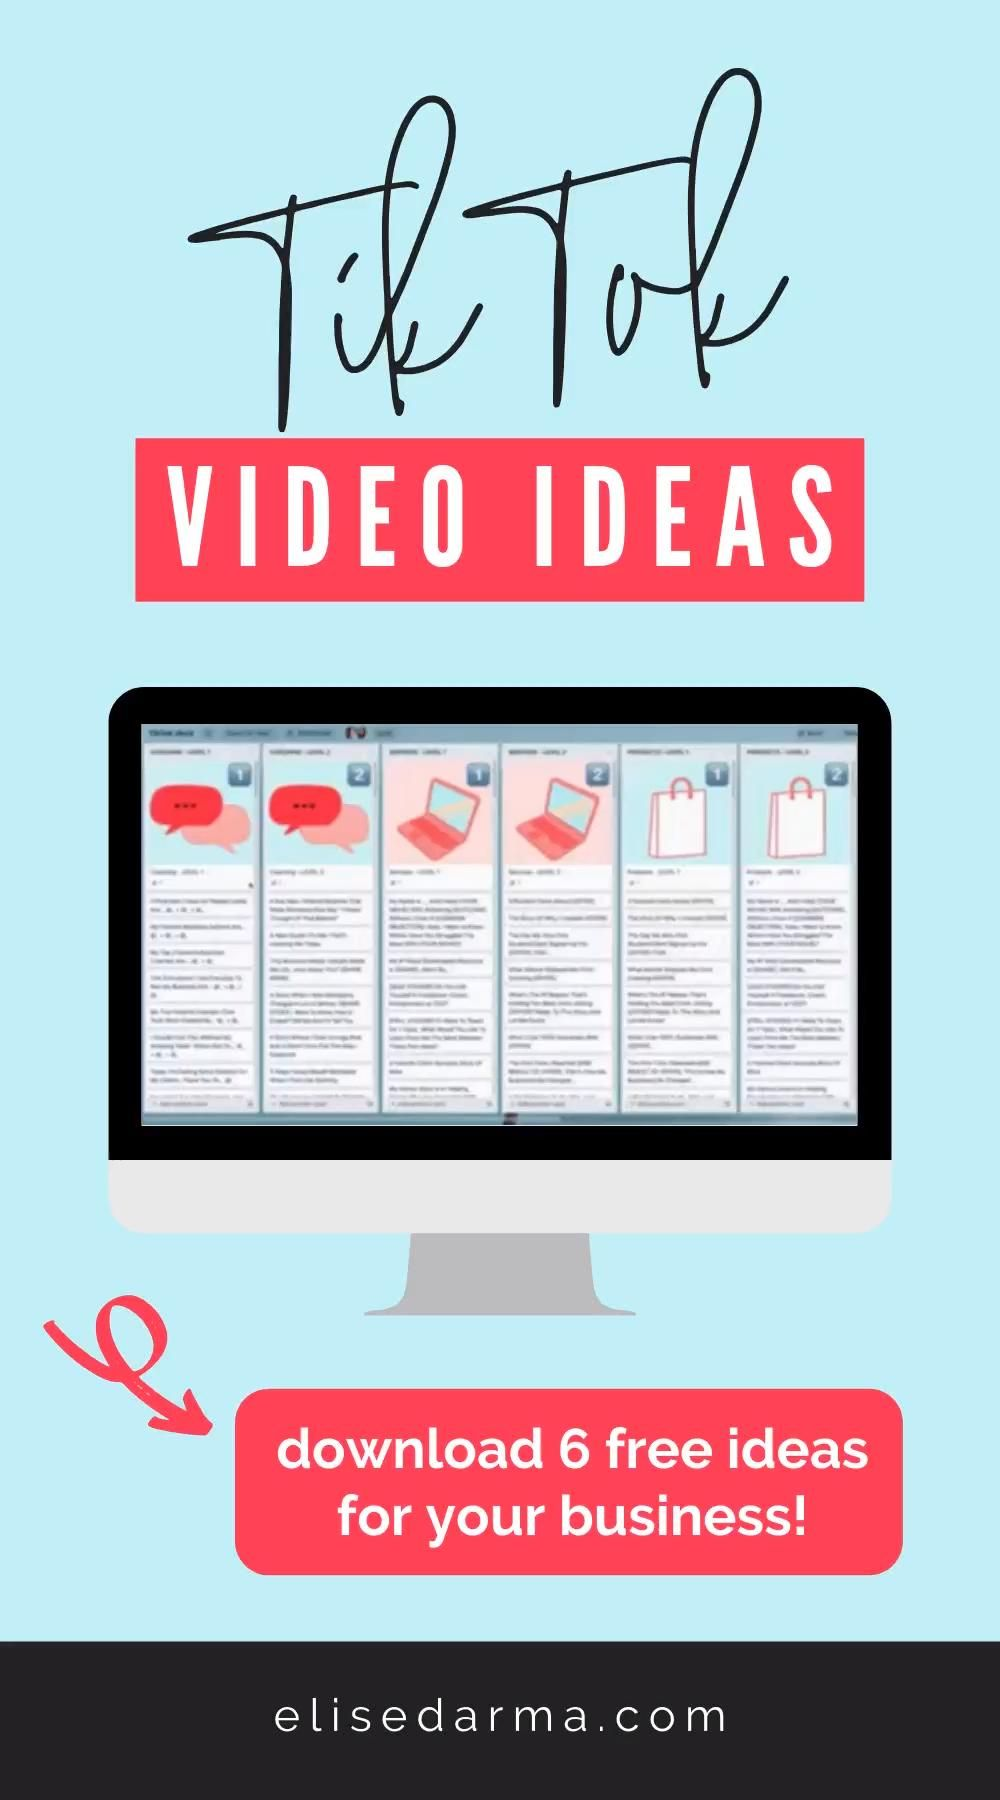 Get 6 Free Tiktok Video Ideas For Your Business Video Personal Marketing Business Video Network Marketing Business